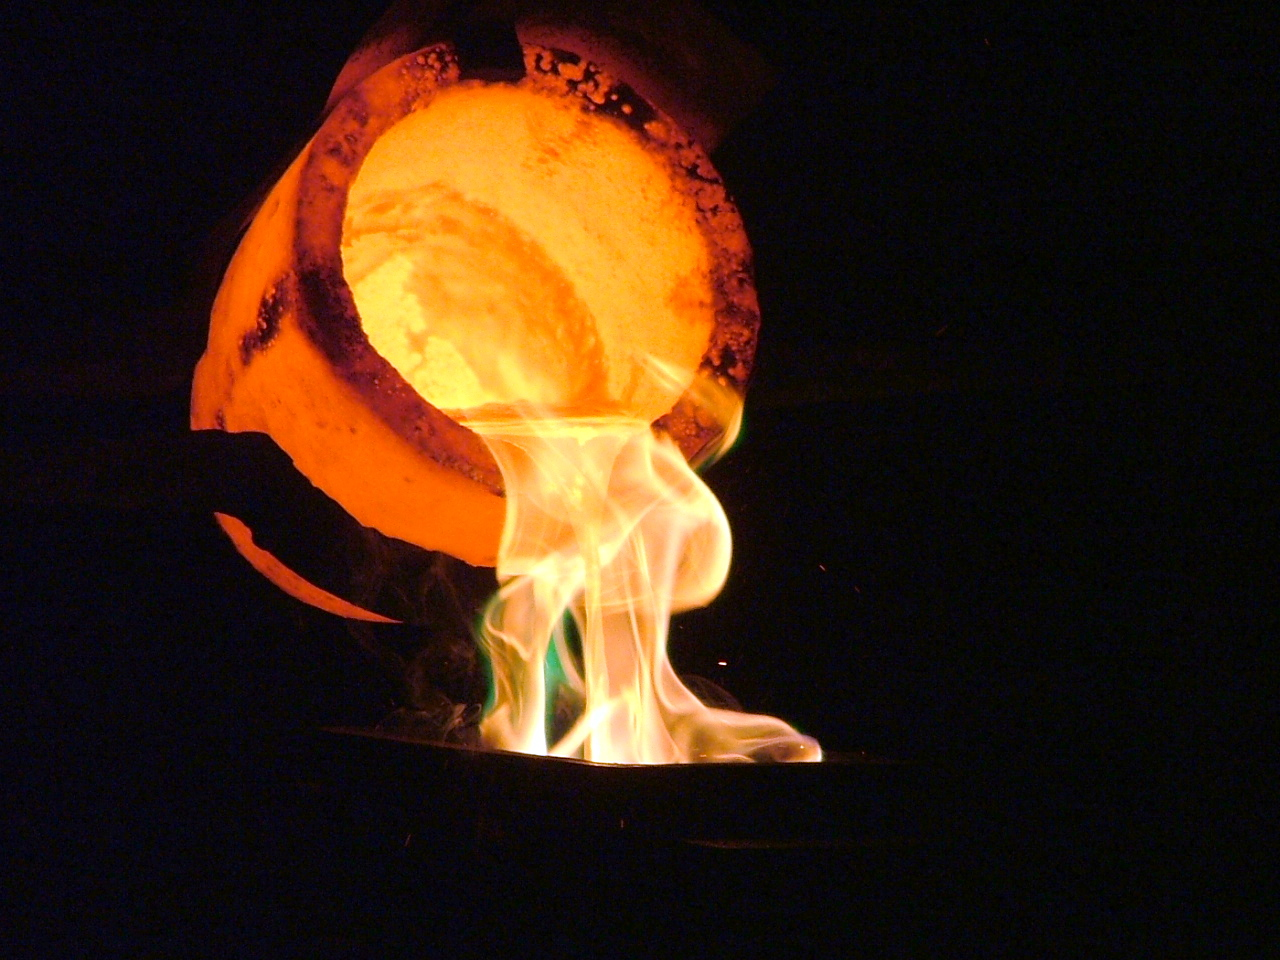 Six mining groups ask court to approve R5 billion silicosis settlement